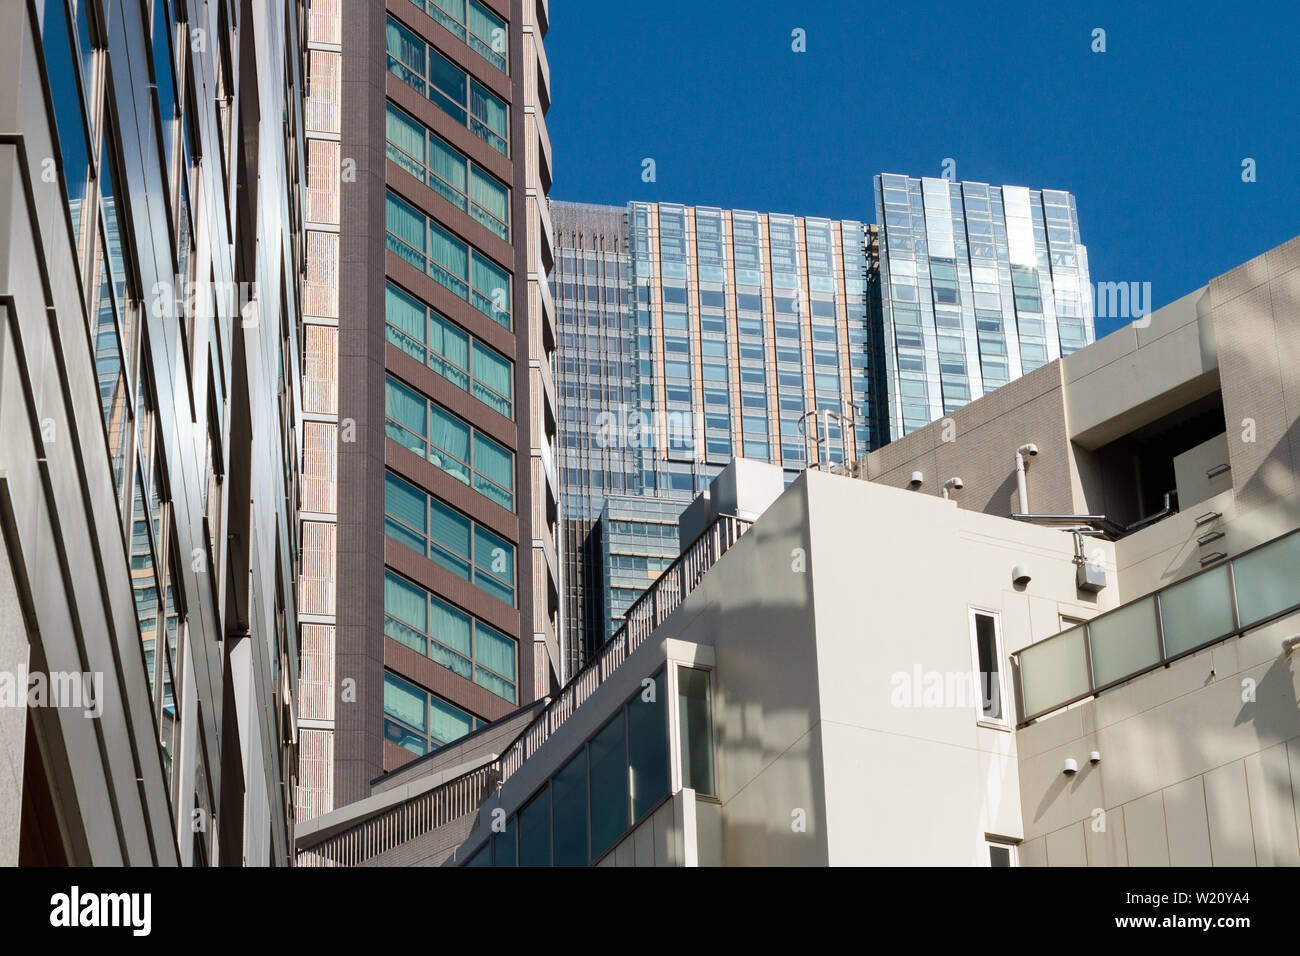 Tokyo Midtown tower seen behind other tall buildings in Roppongi, Tokyo, Japan. Friday February 5th 2016 - Stock Image